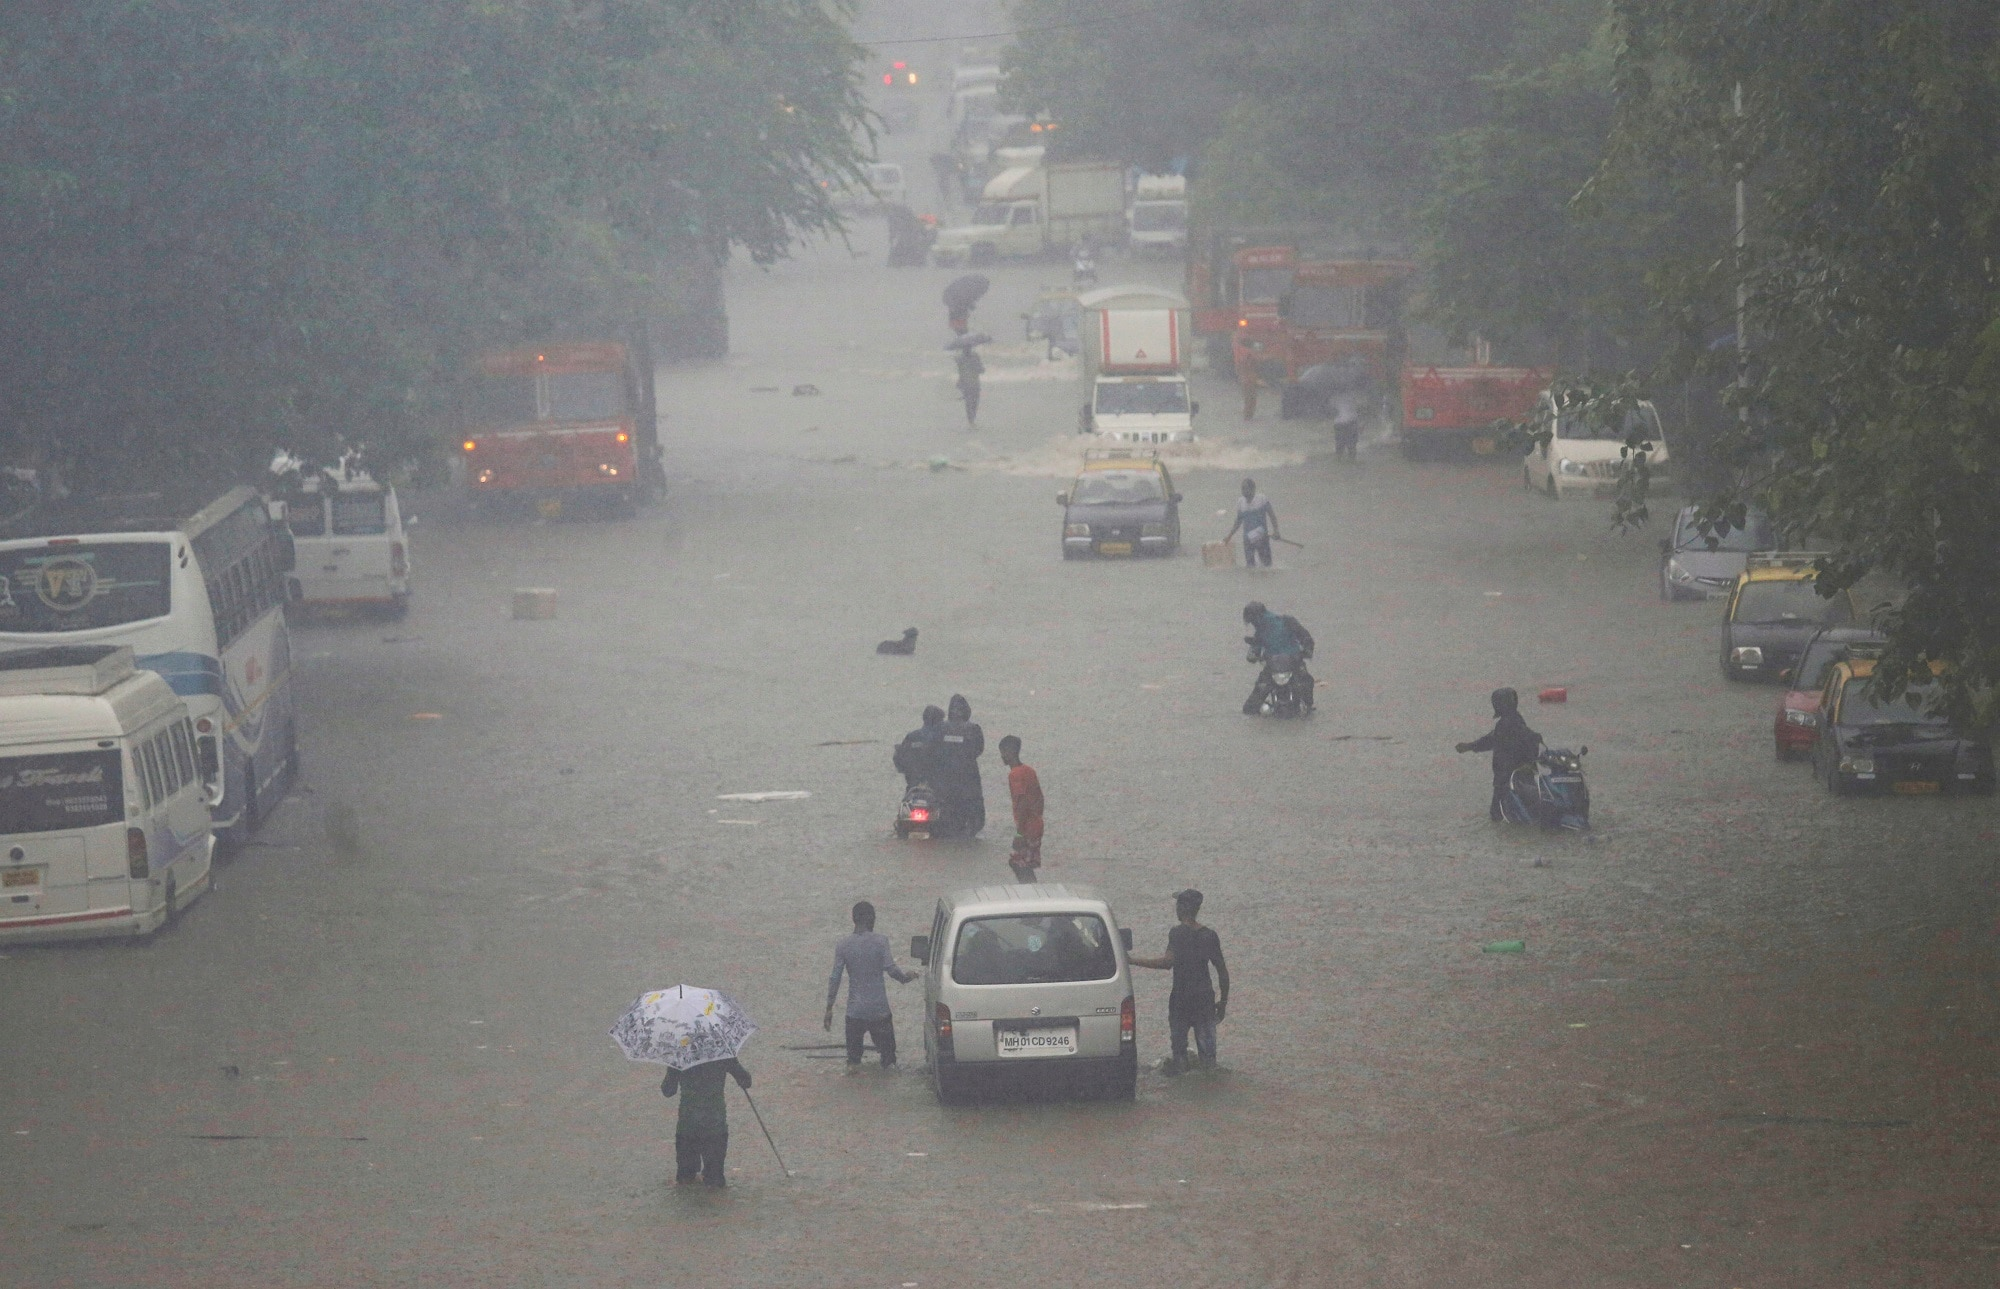 Commuters walk on a flooded street. Photo: Reuters